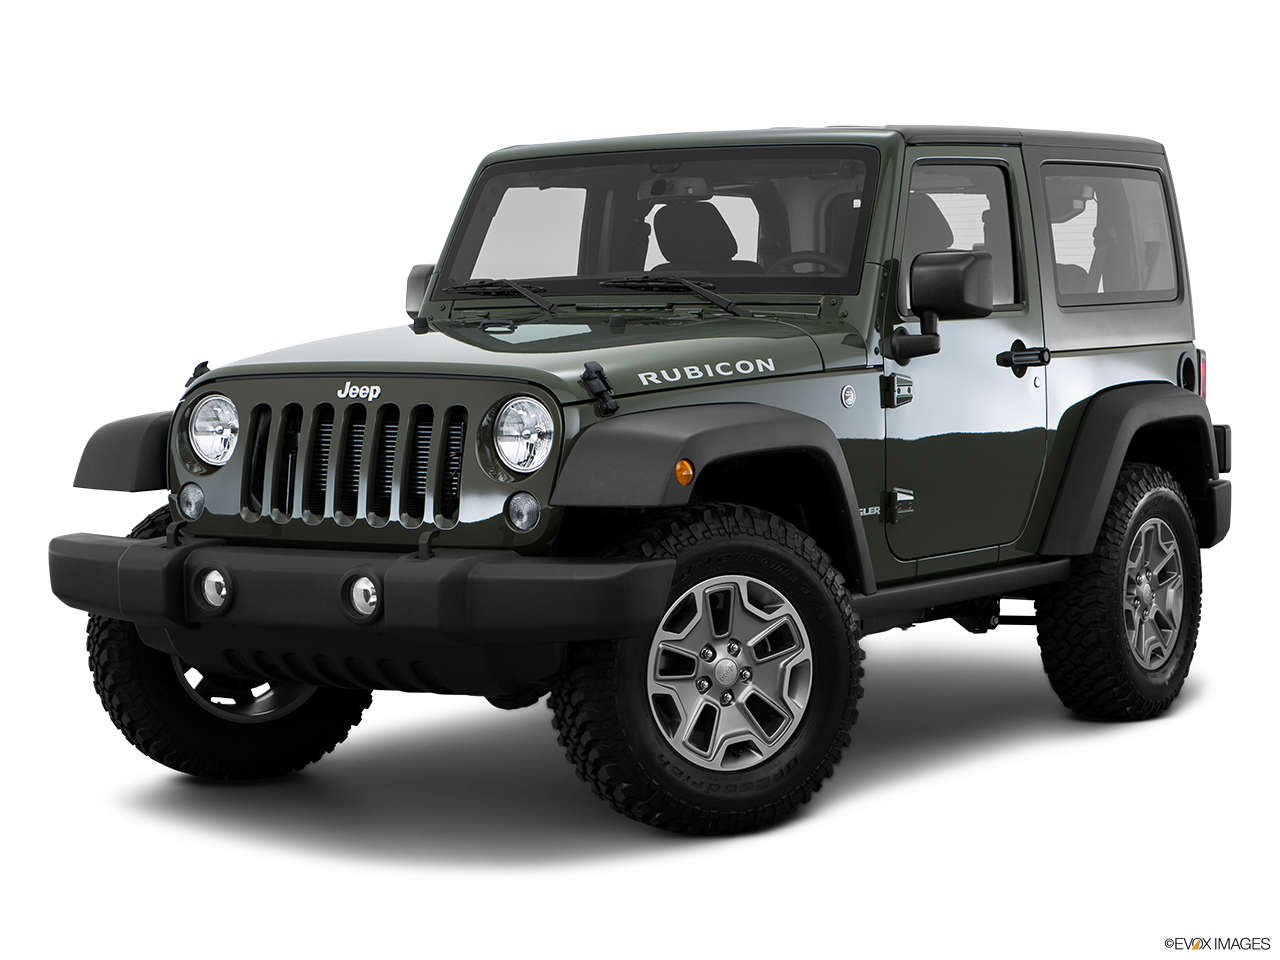 Test Drive A 2016 Jeep Wrangler at Moss Bros Chrysler Dodge Jeep Ram Moreno Valley in Moreno Valley